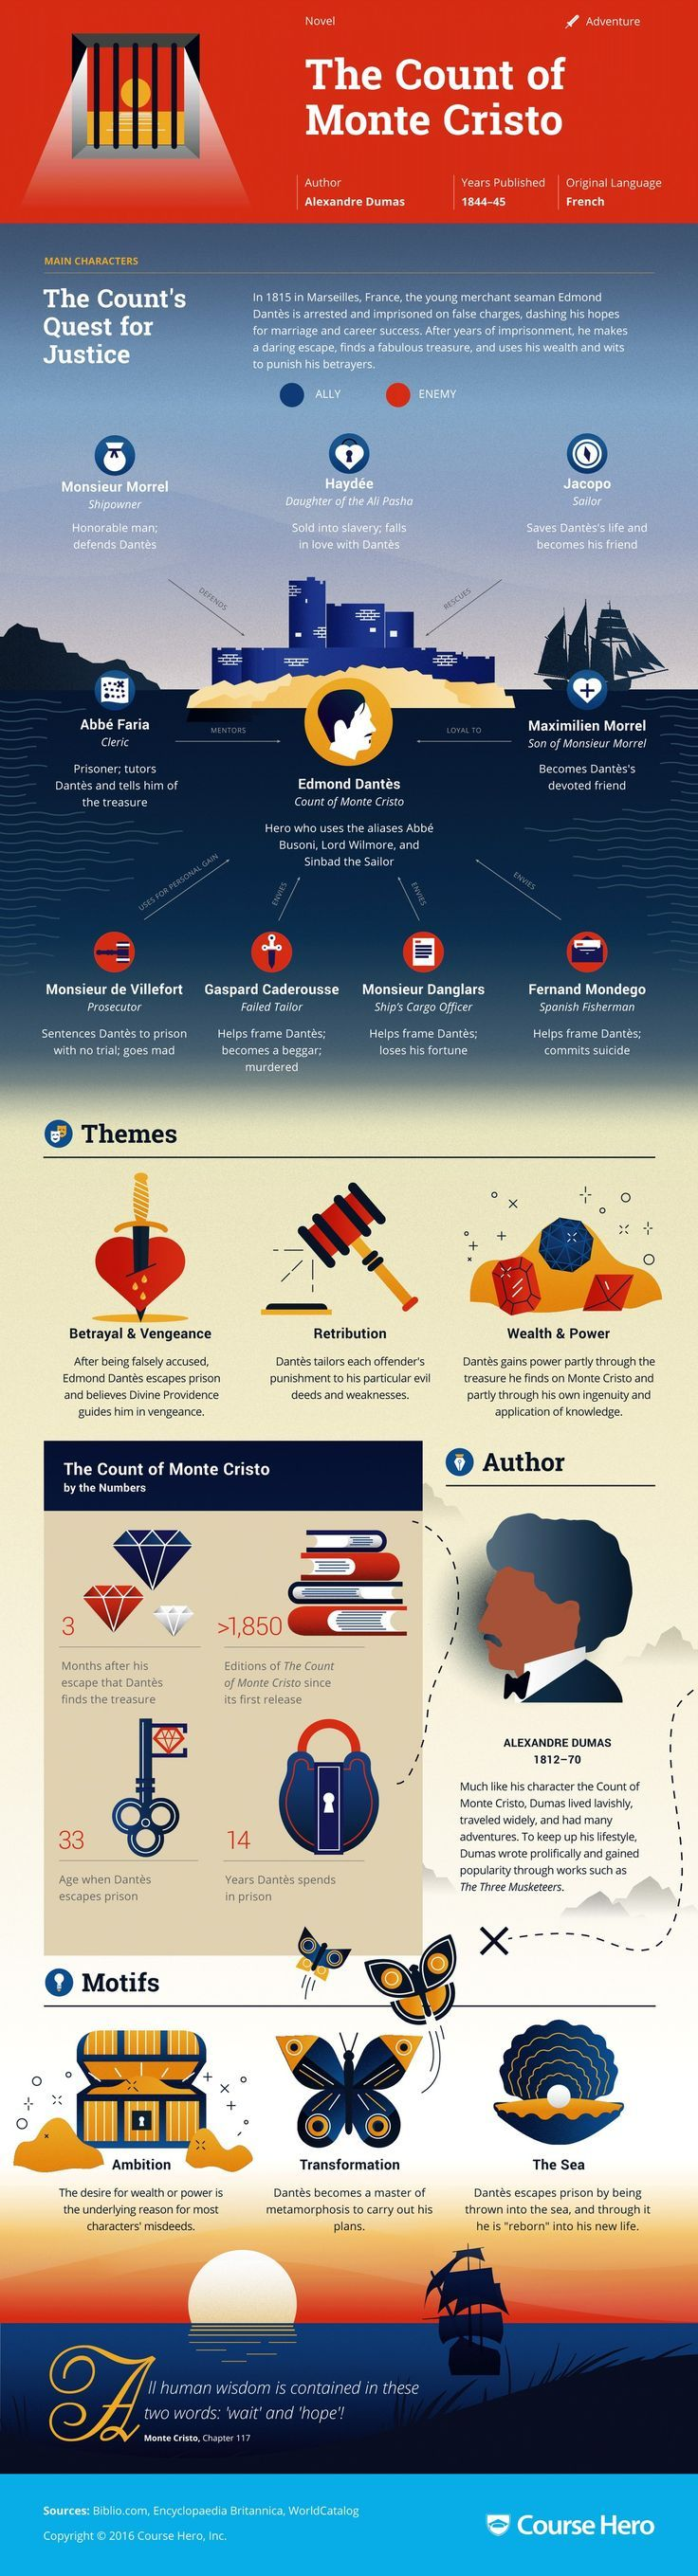 97 best honors education images on pinterest american history amy the count of monte cristo infographic course hero fandeluxe Gallery